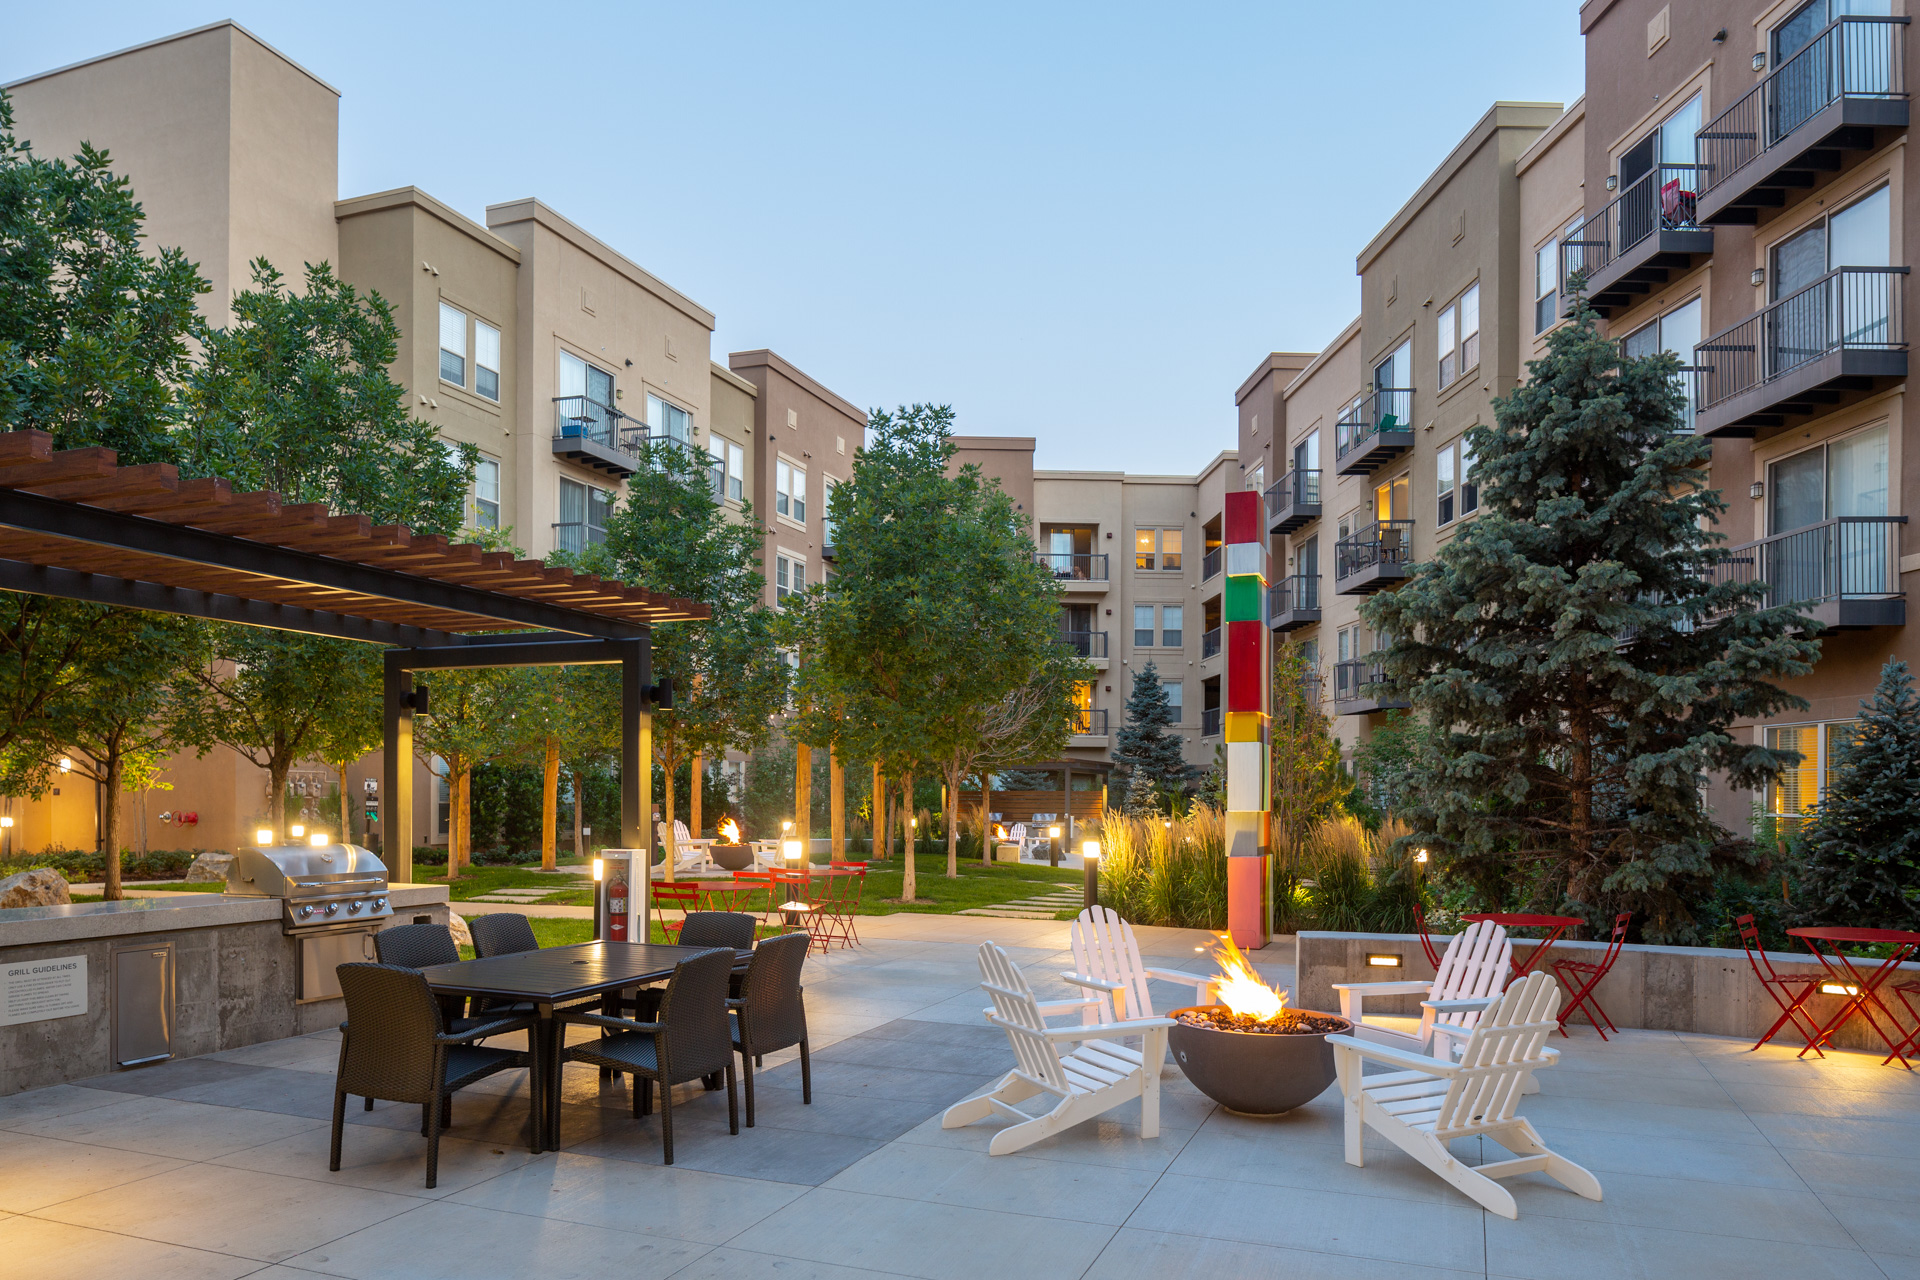 21 Fitzsimons Apartments - Aurora, CO - Outdoor Area